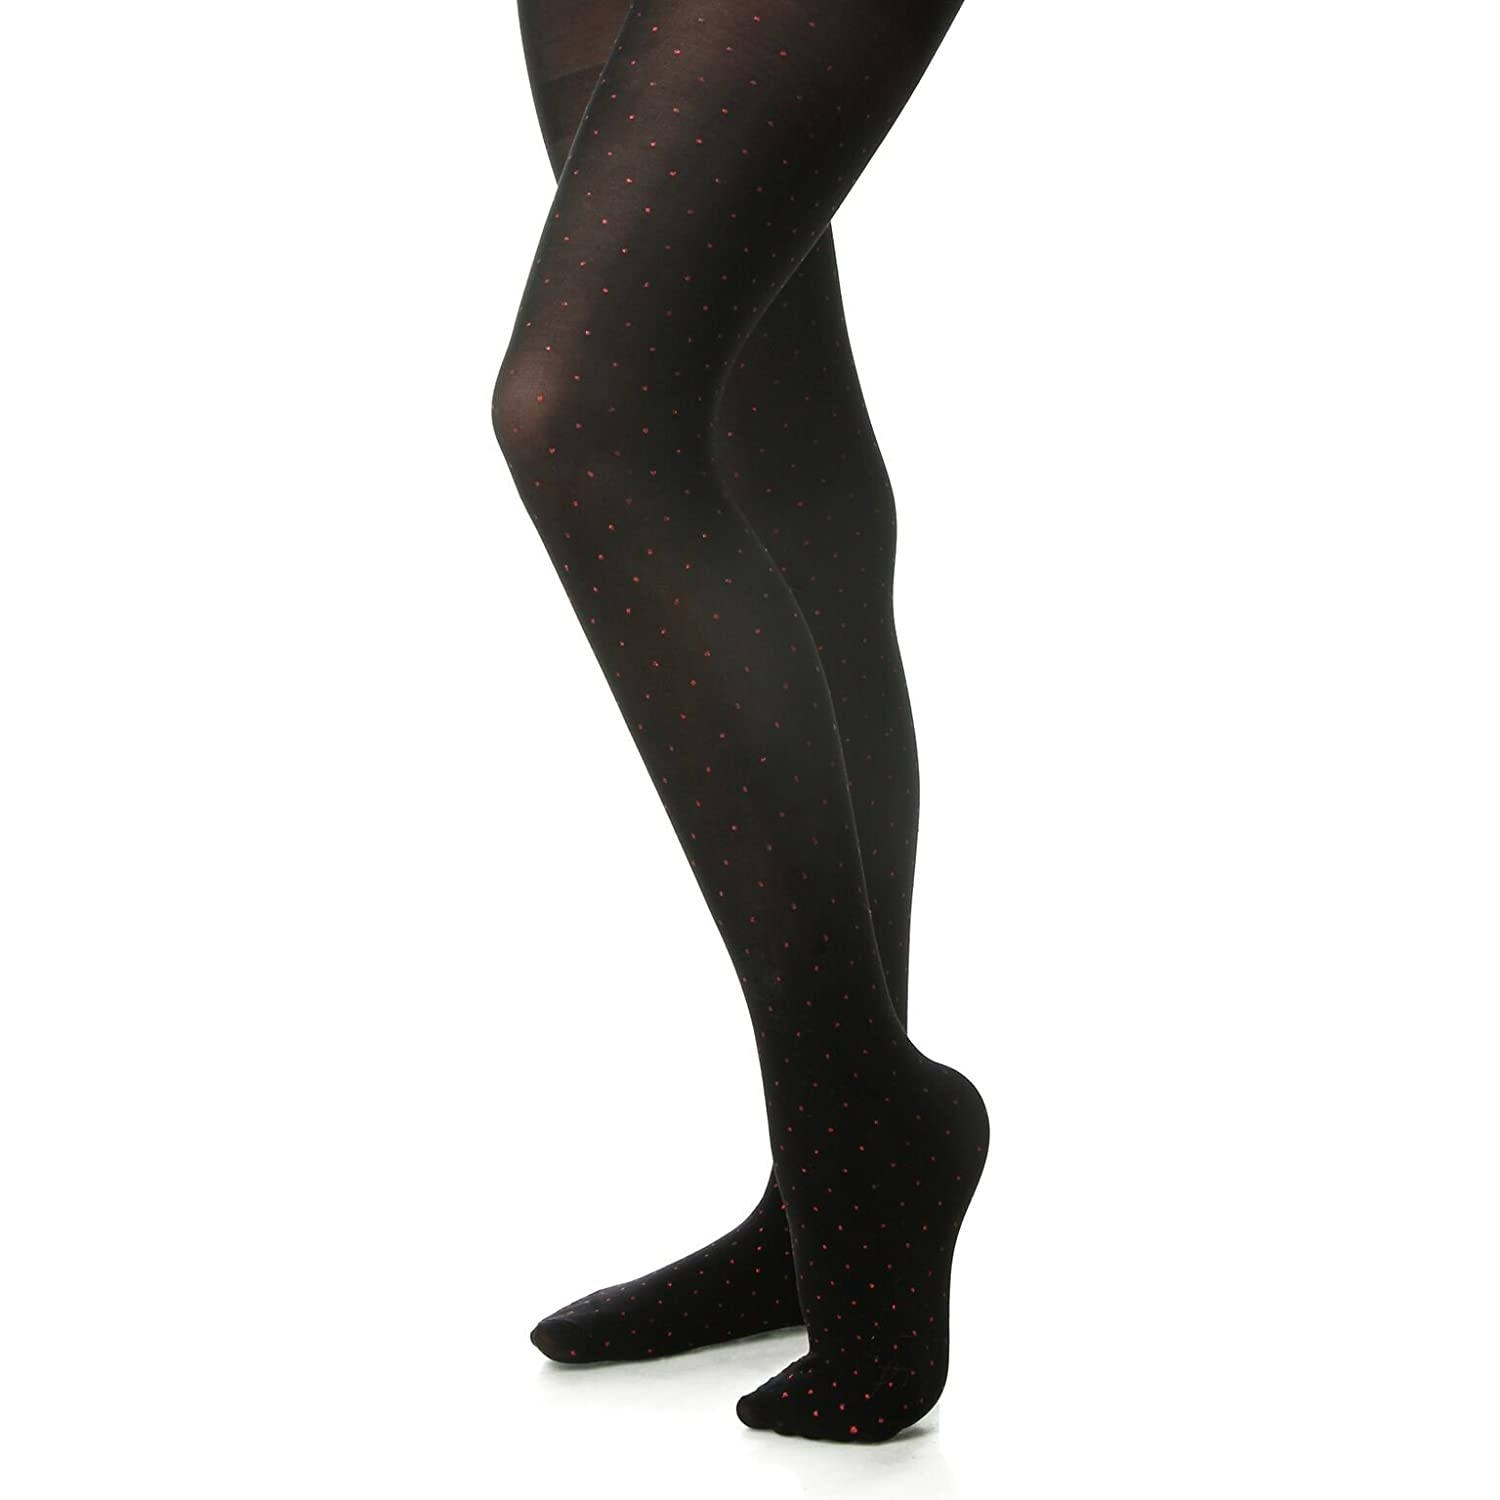 6b89685890d1a Amazon.com: Silky Toes Microfiber Girls Opaque Footed Glitter Polka Dot  Embellished Tights (2 Pairs): Clothing